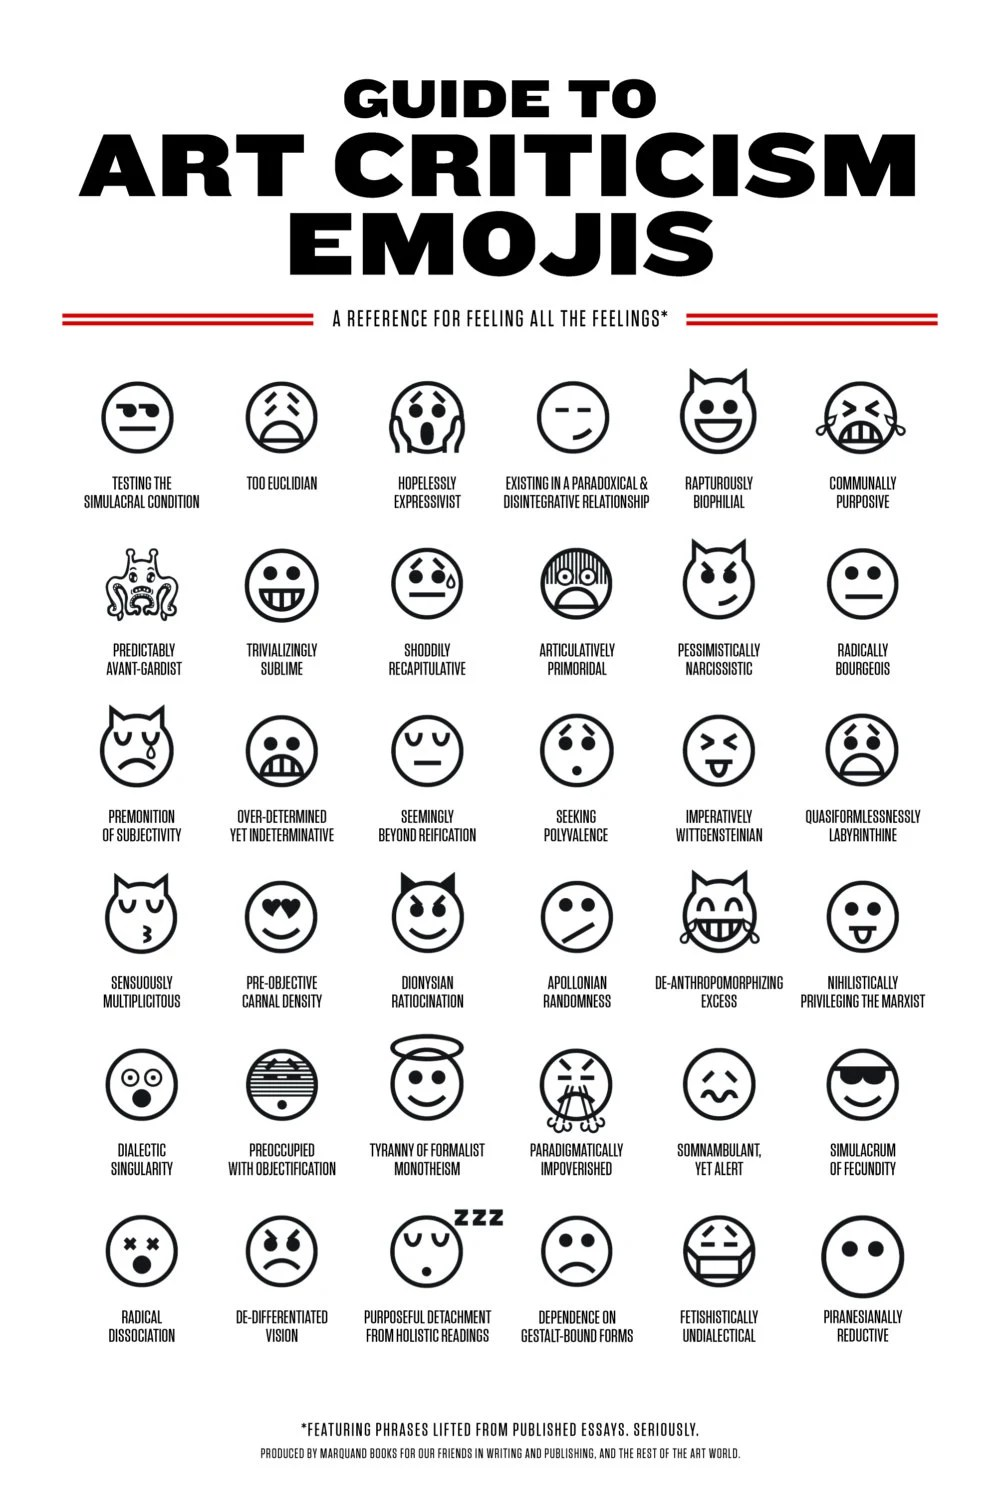 Guide to Art Criticism Emojis by PaperHammerTieton on Etsy